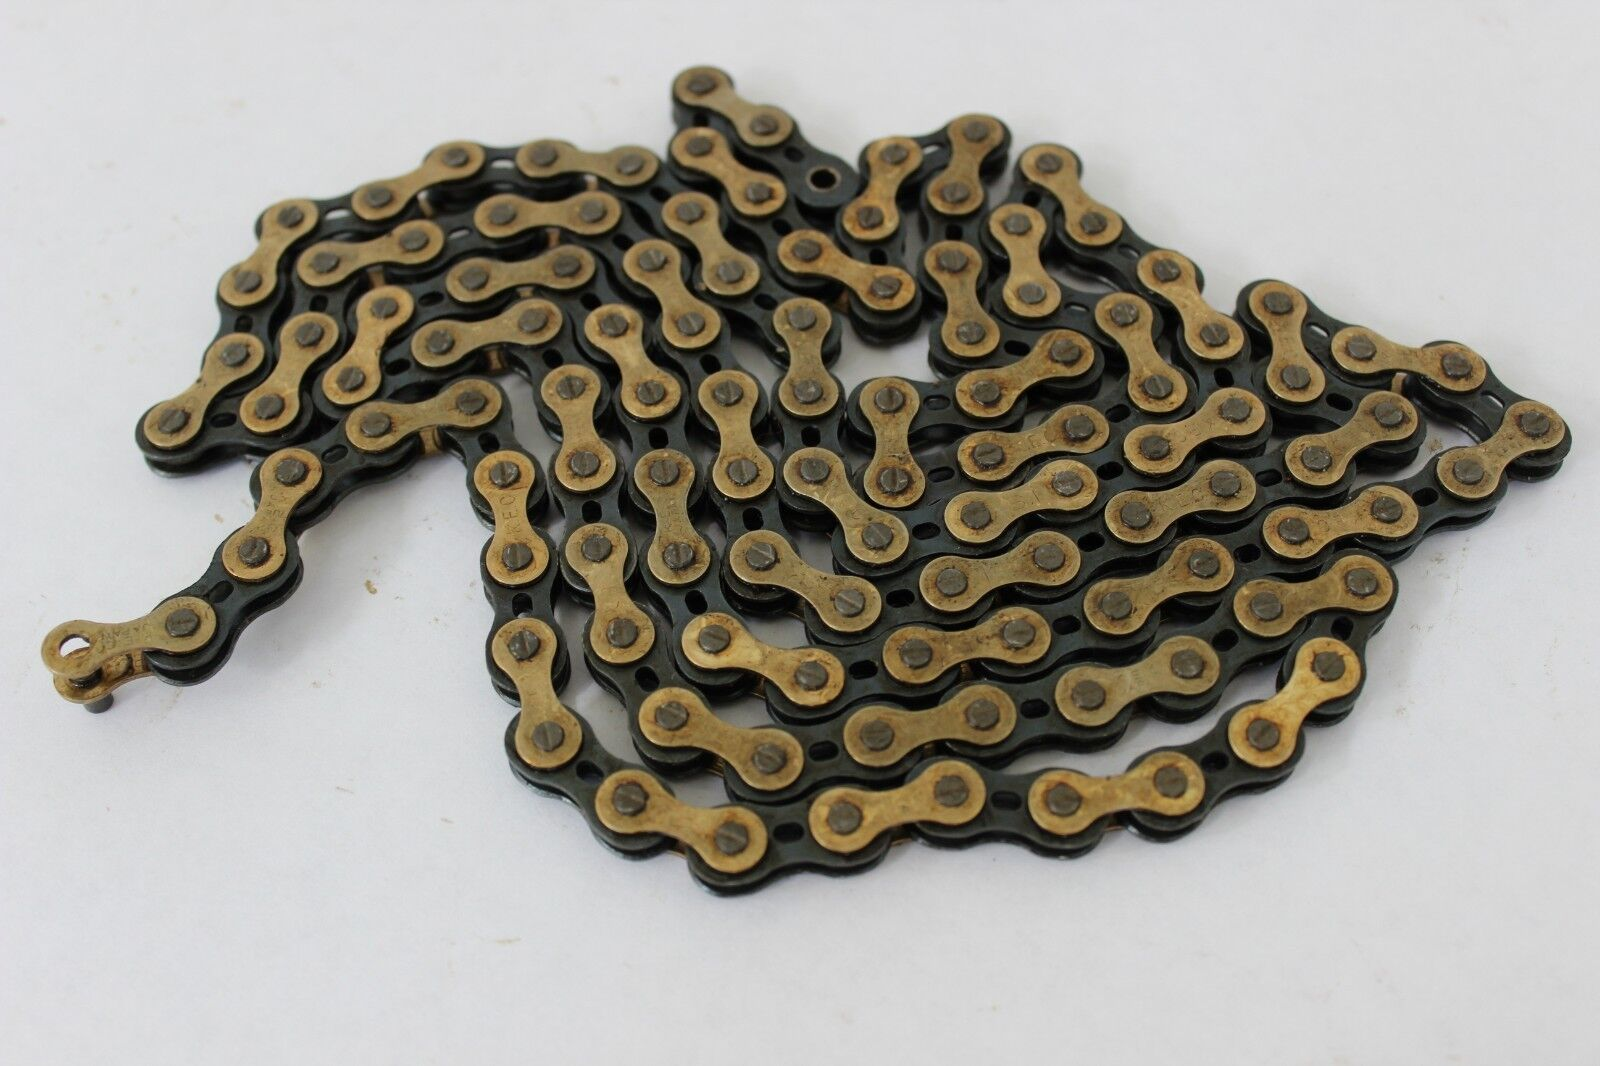 NOS Drilled Road Bike Bicycle Chain NEVER USED 116 Links from 1980-81